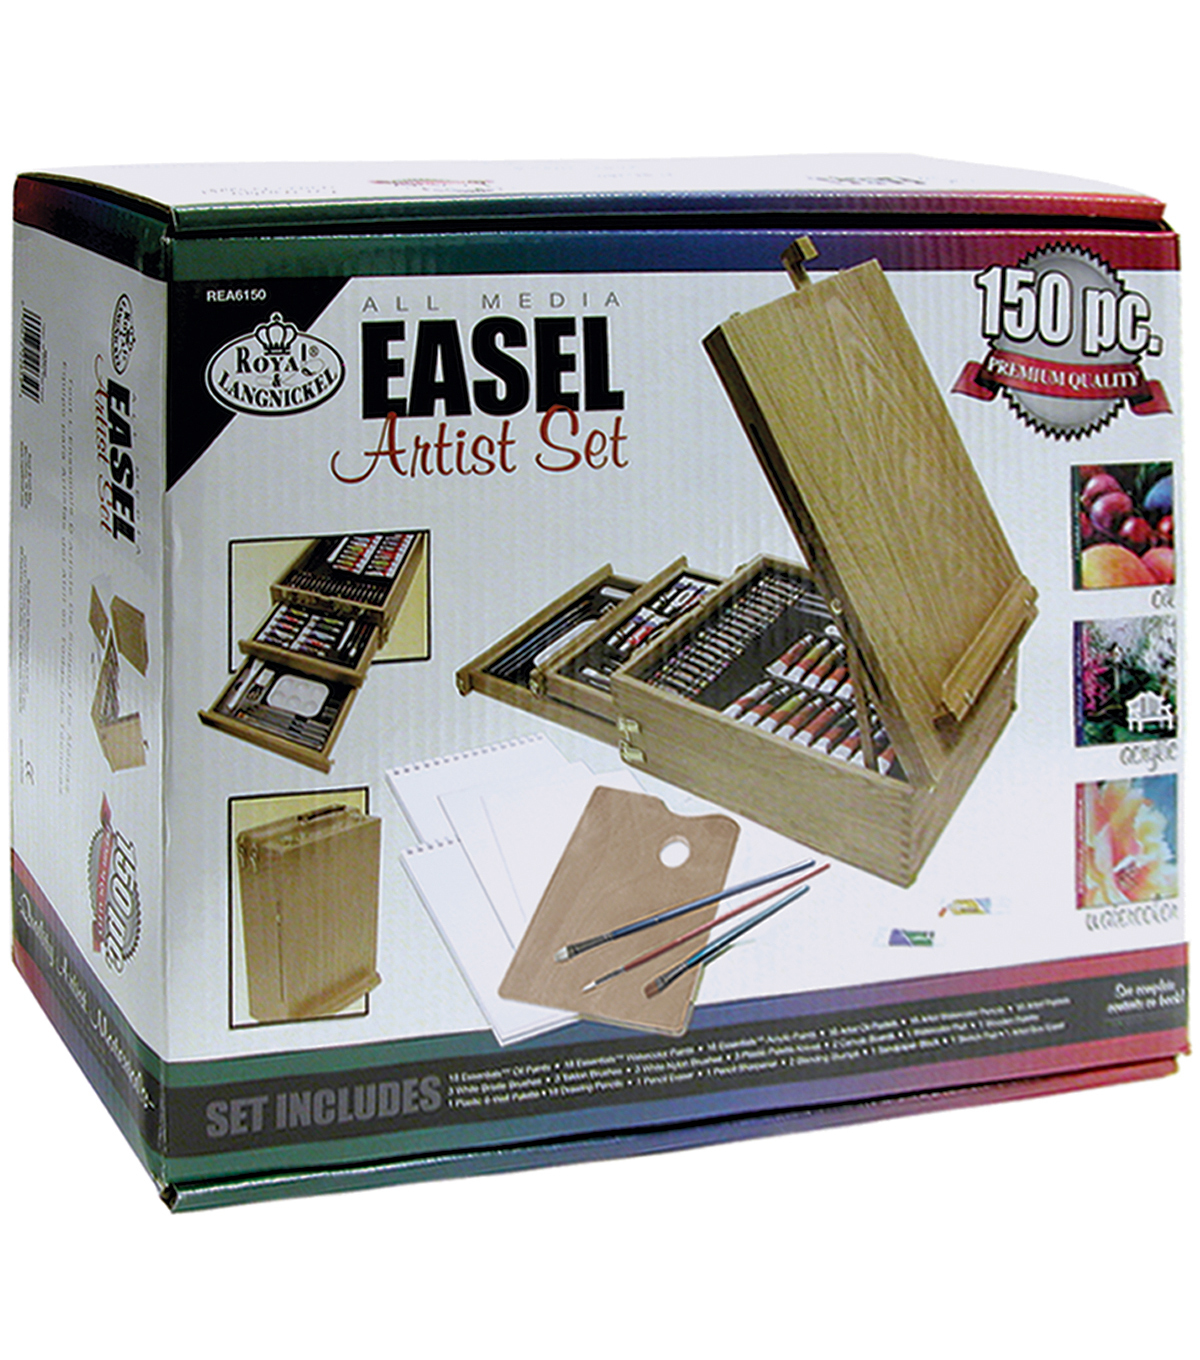 Royal Brush Easel Artist Set-All Media-150 Pieces